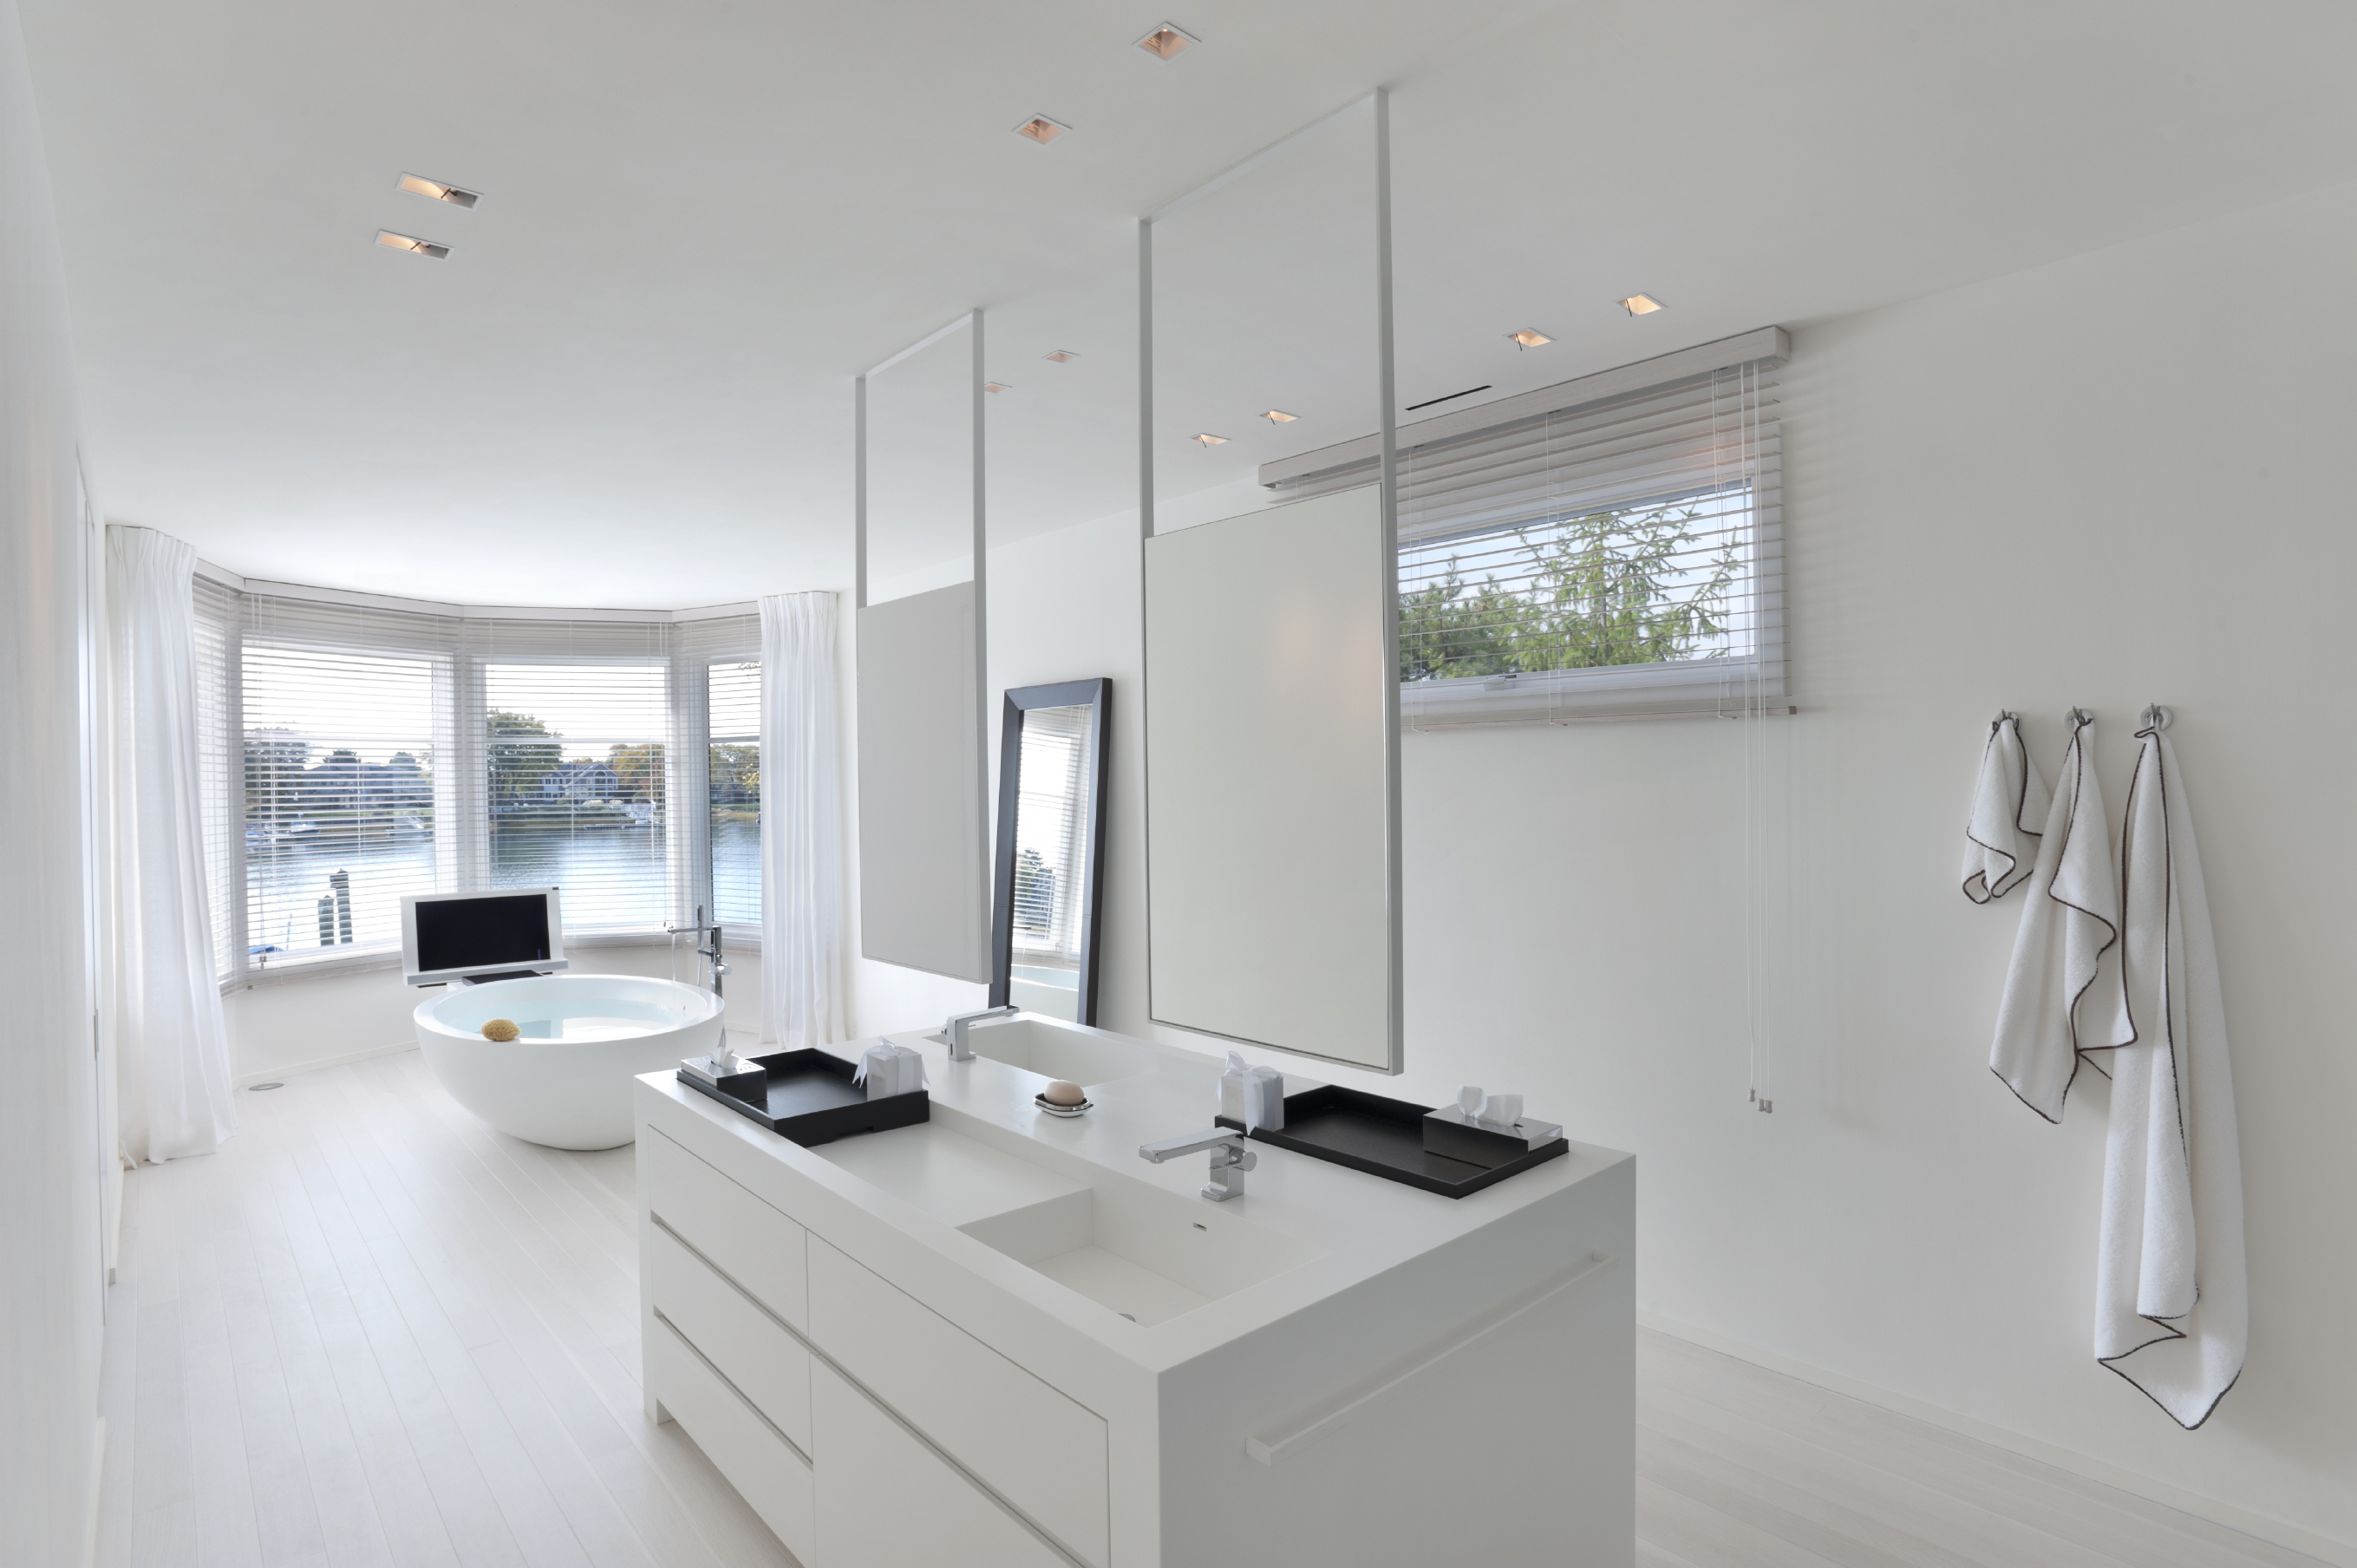 Bathroom Design Glasgow For Quality & Value Installations